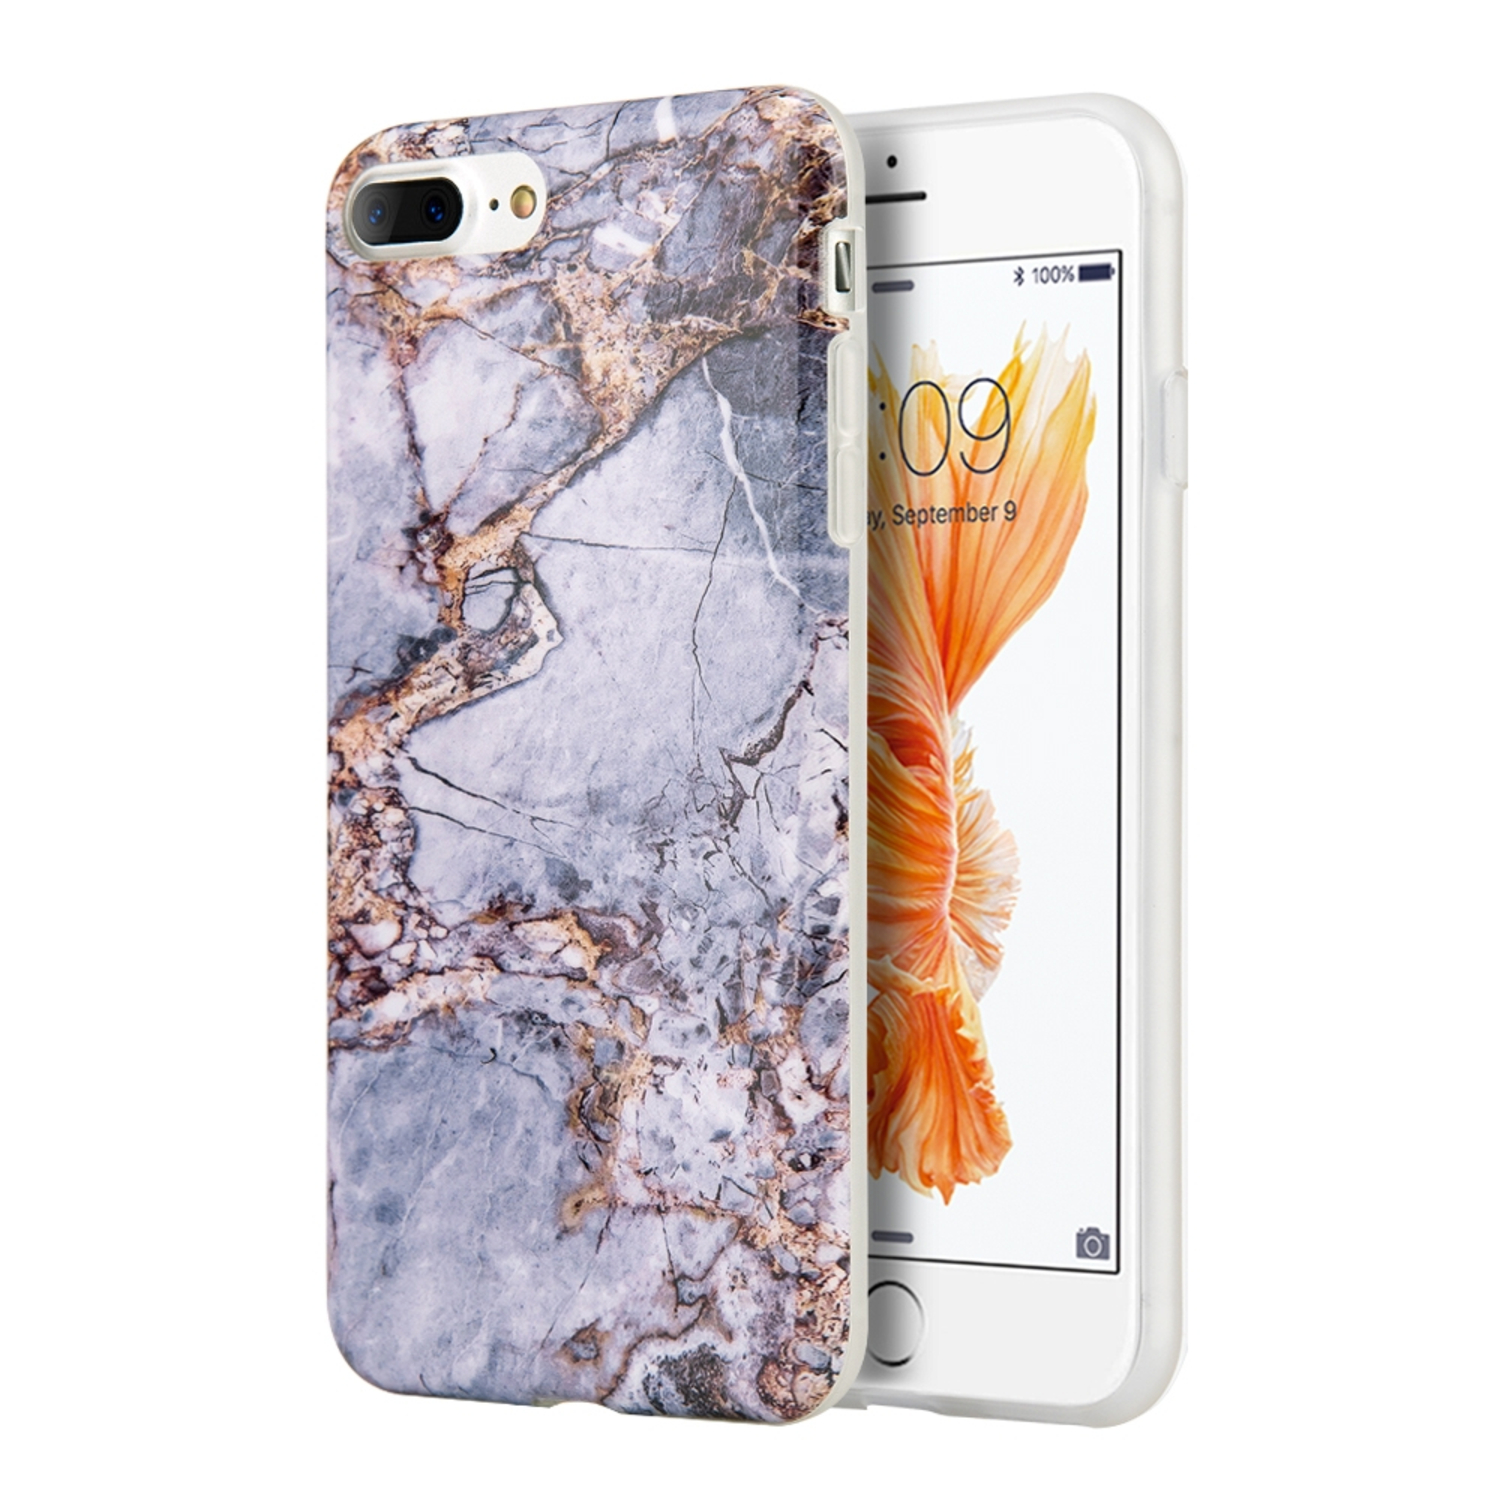 iPhone 8 Plus case, iPhone 7 Plus case, by Insten Marble TPU Rubber Candy Skin Case Cover For Apple iPhone 8 Plus / iPhone 7 Plus